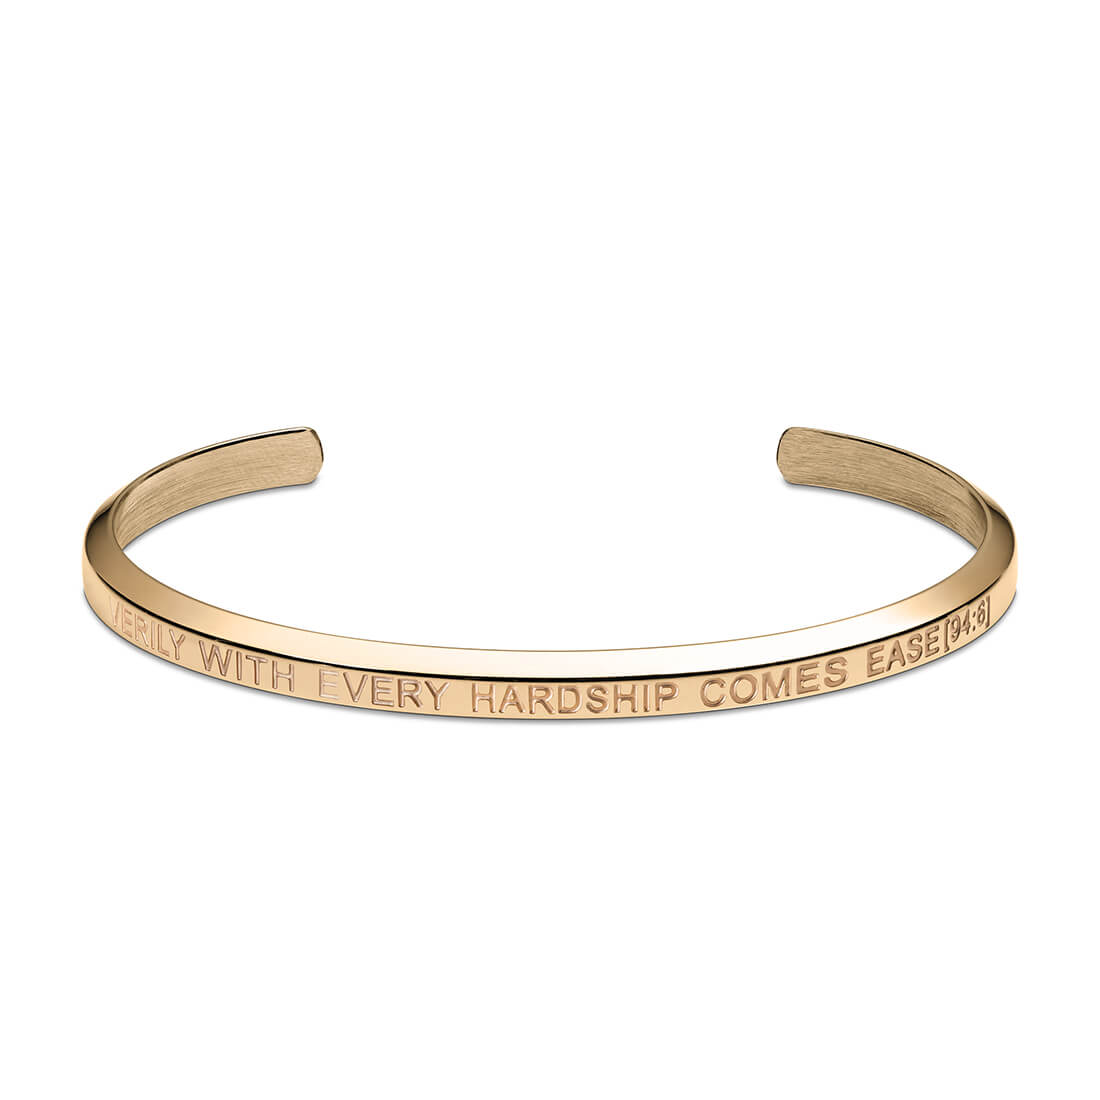 With Every Hardship Comes Ease Cuff Bracelet in Gold by Crscnt Moon